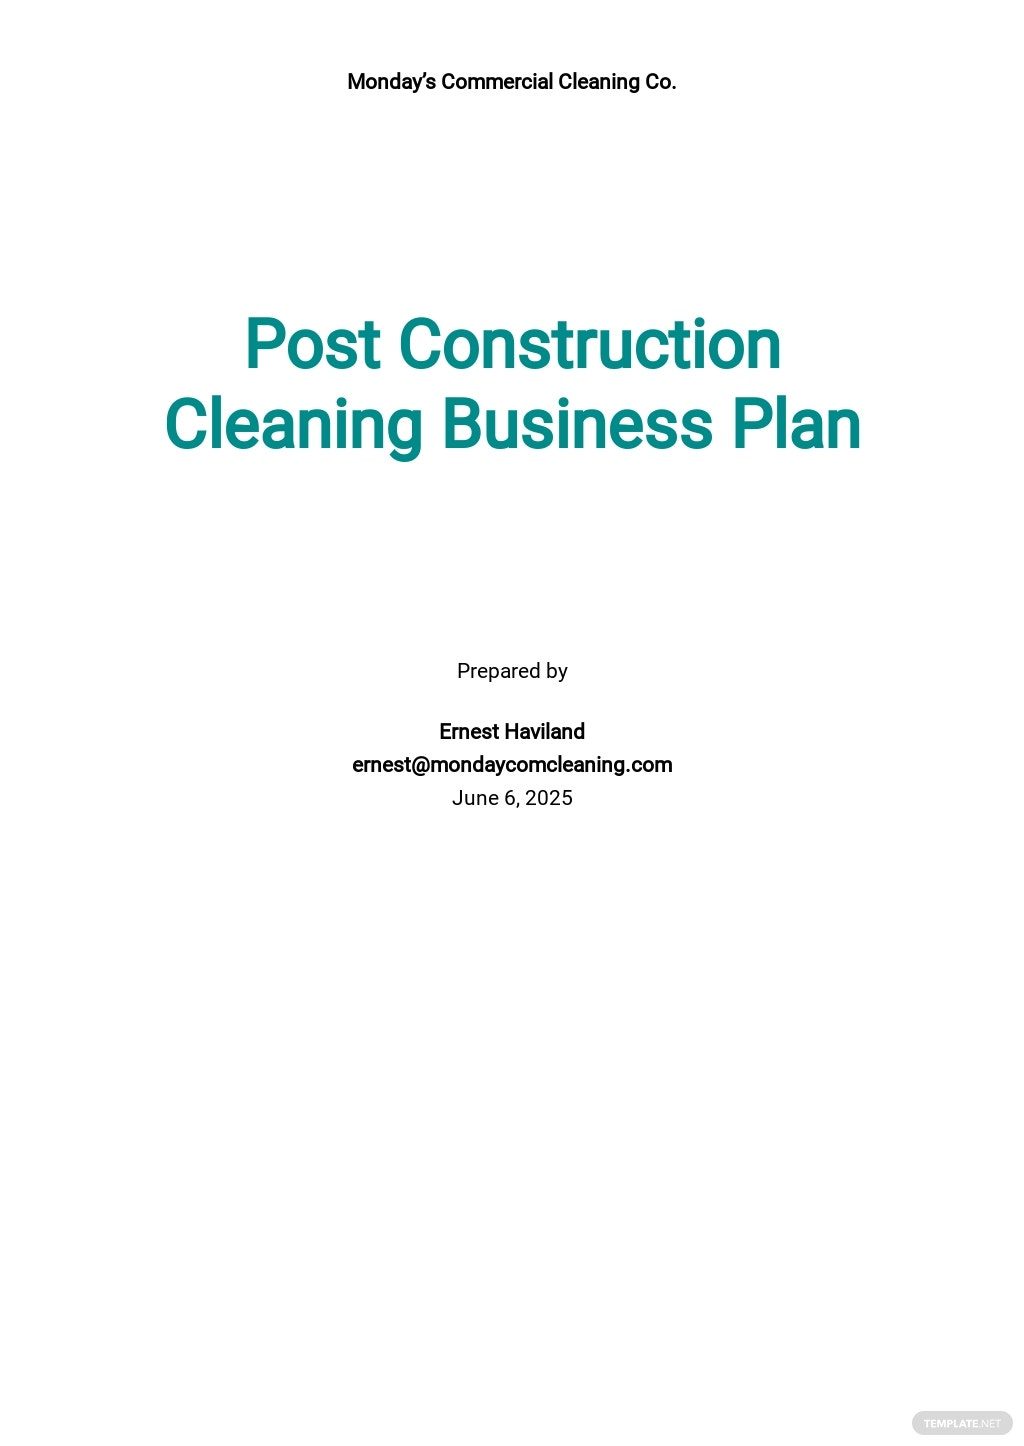 Post Construction Cleaning Business Plan Template.jpe